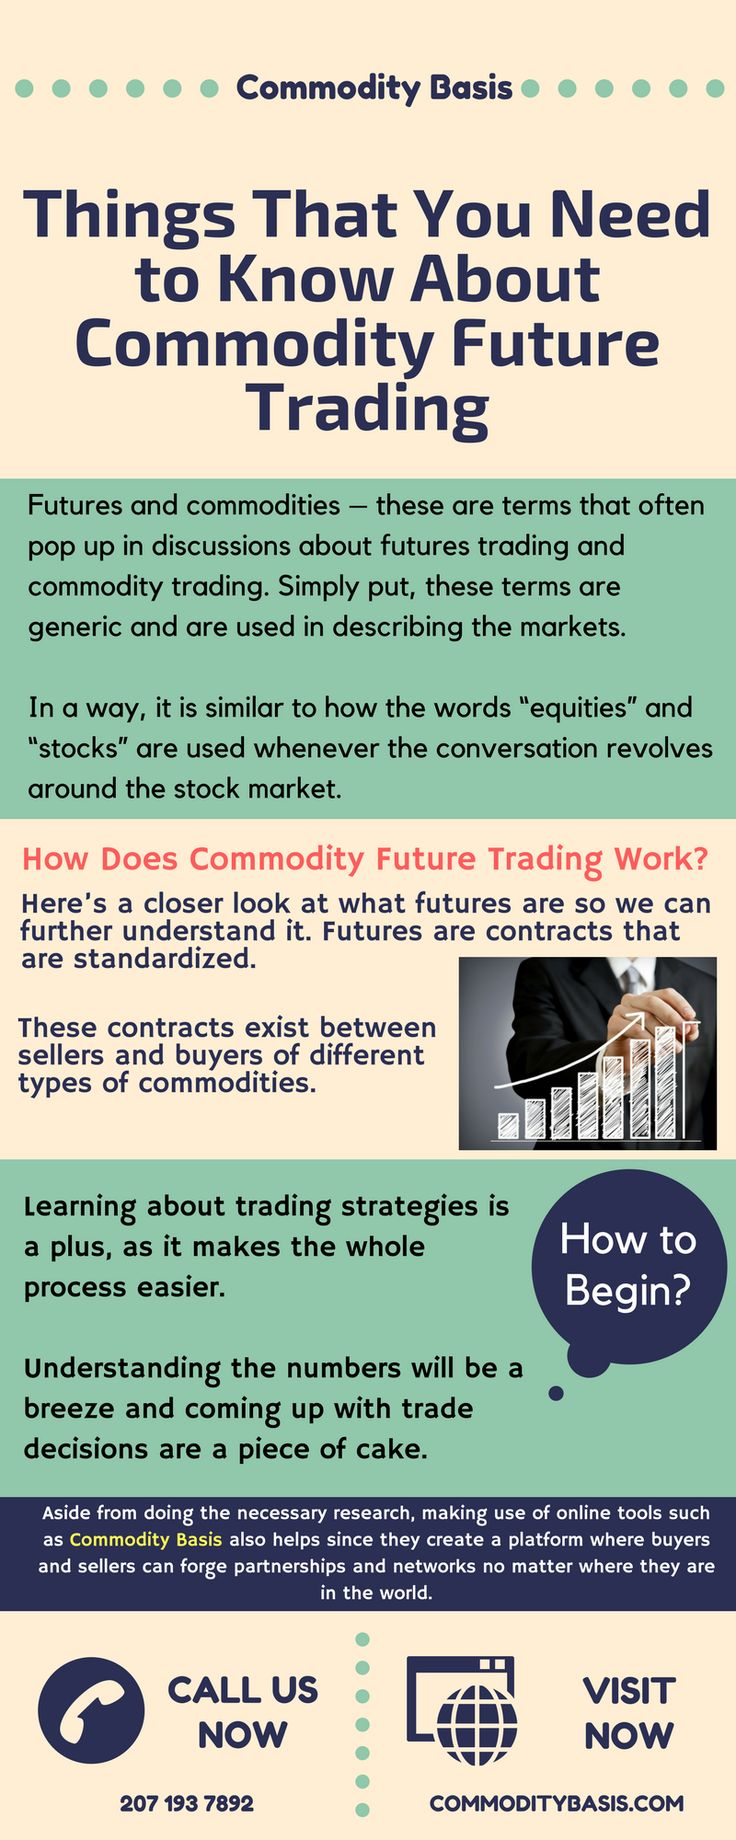 Take look over some basic ideas about Commodity Future Trading by Commodity basis. Get live Commodity prices for Global stock markets, real-time updates on futures prices, commodity cash for commodities trading. Commodity Basis also helps since they create a platform where buyers and sellers can forge partnerships and networks no matter where they are in the world.